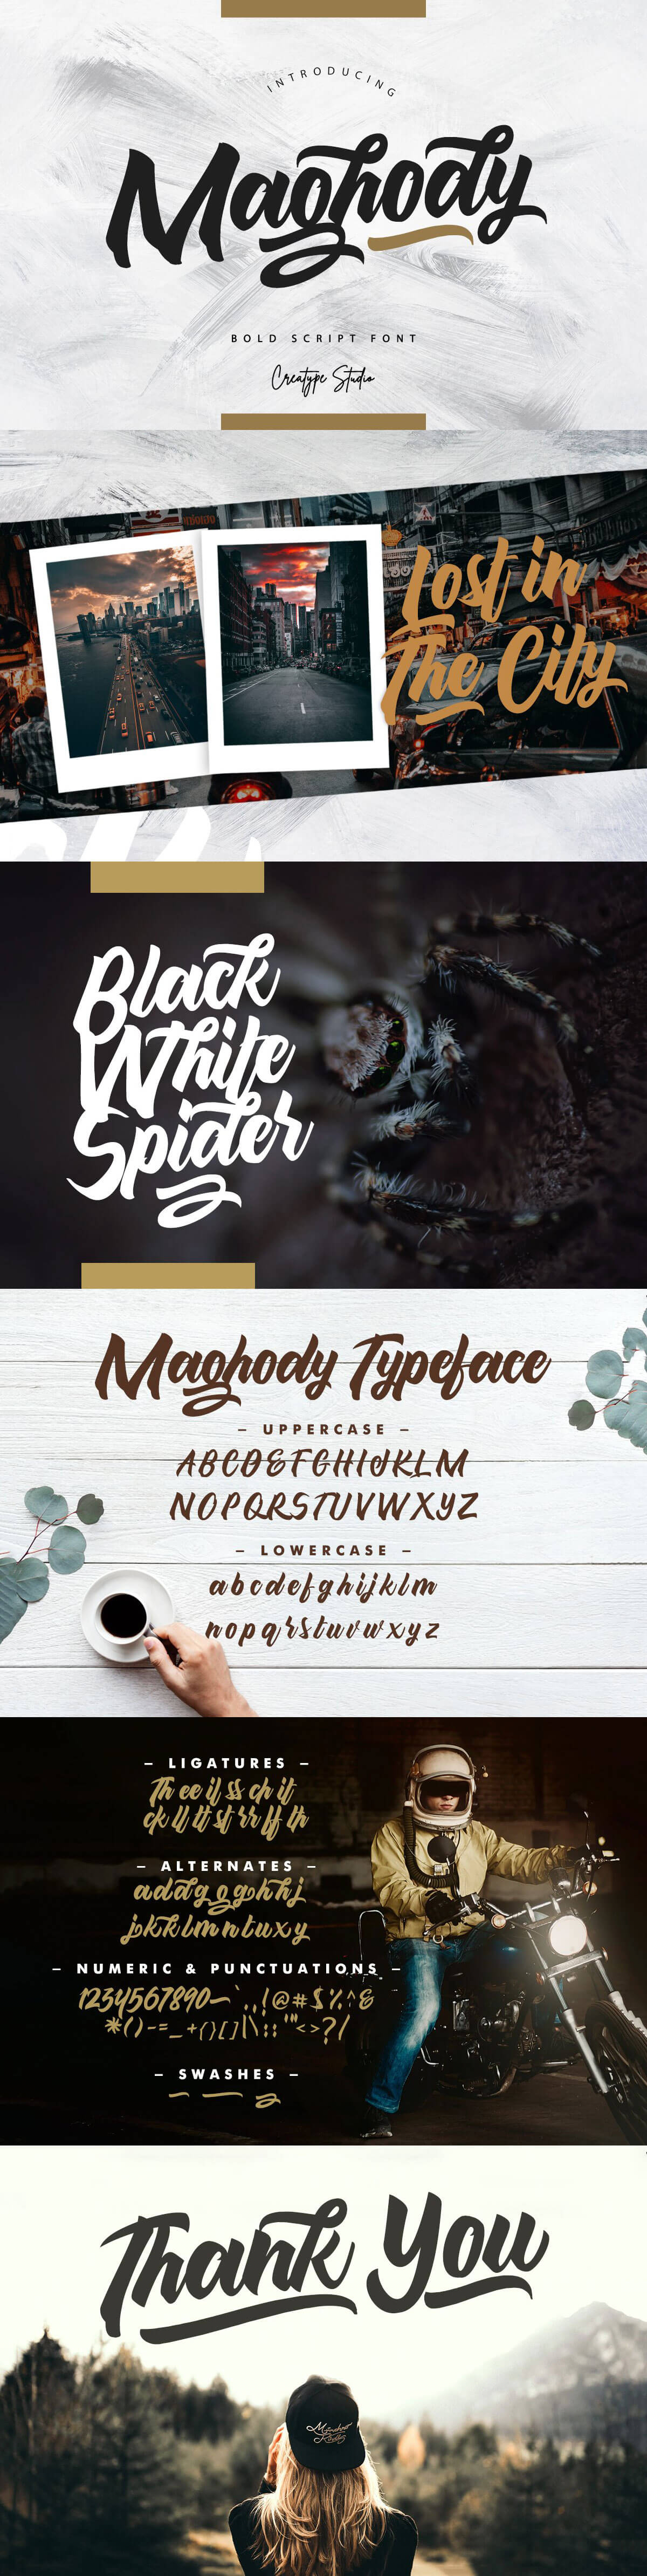 Free Maghody Script Font